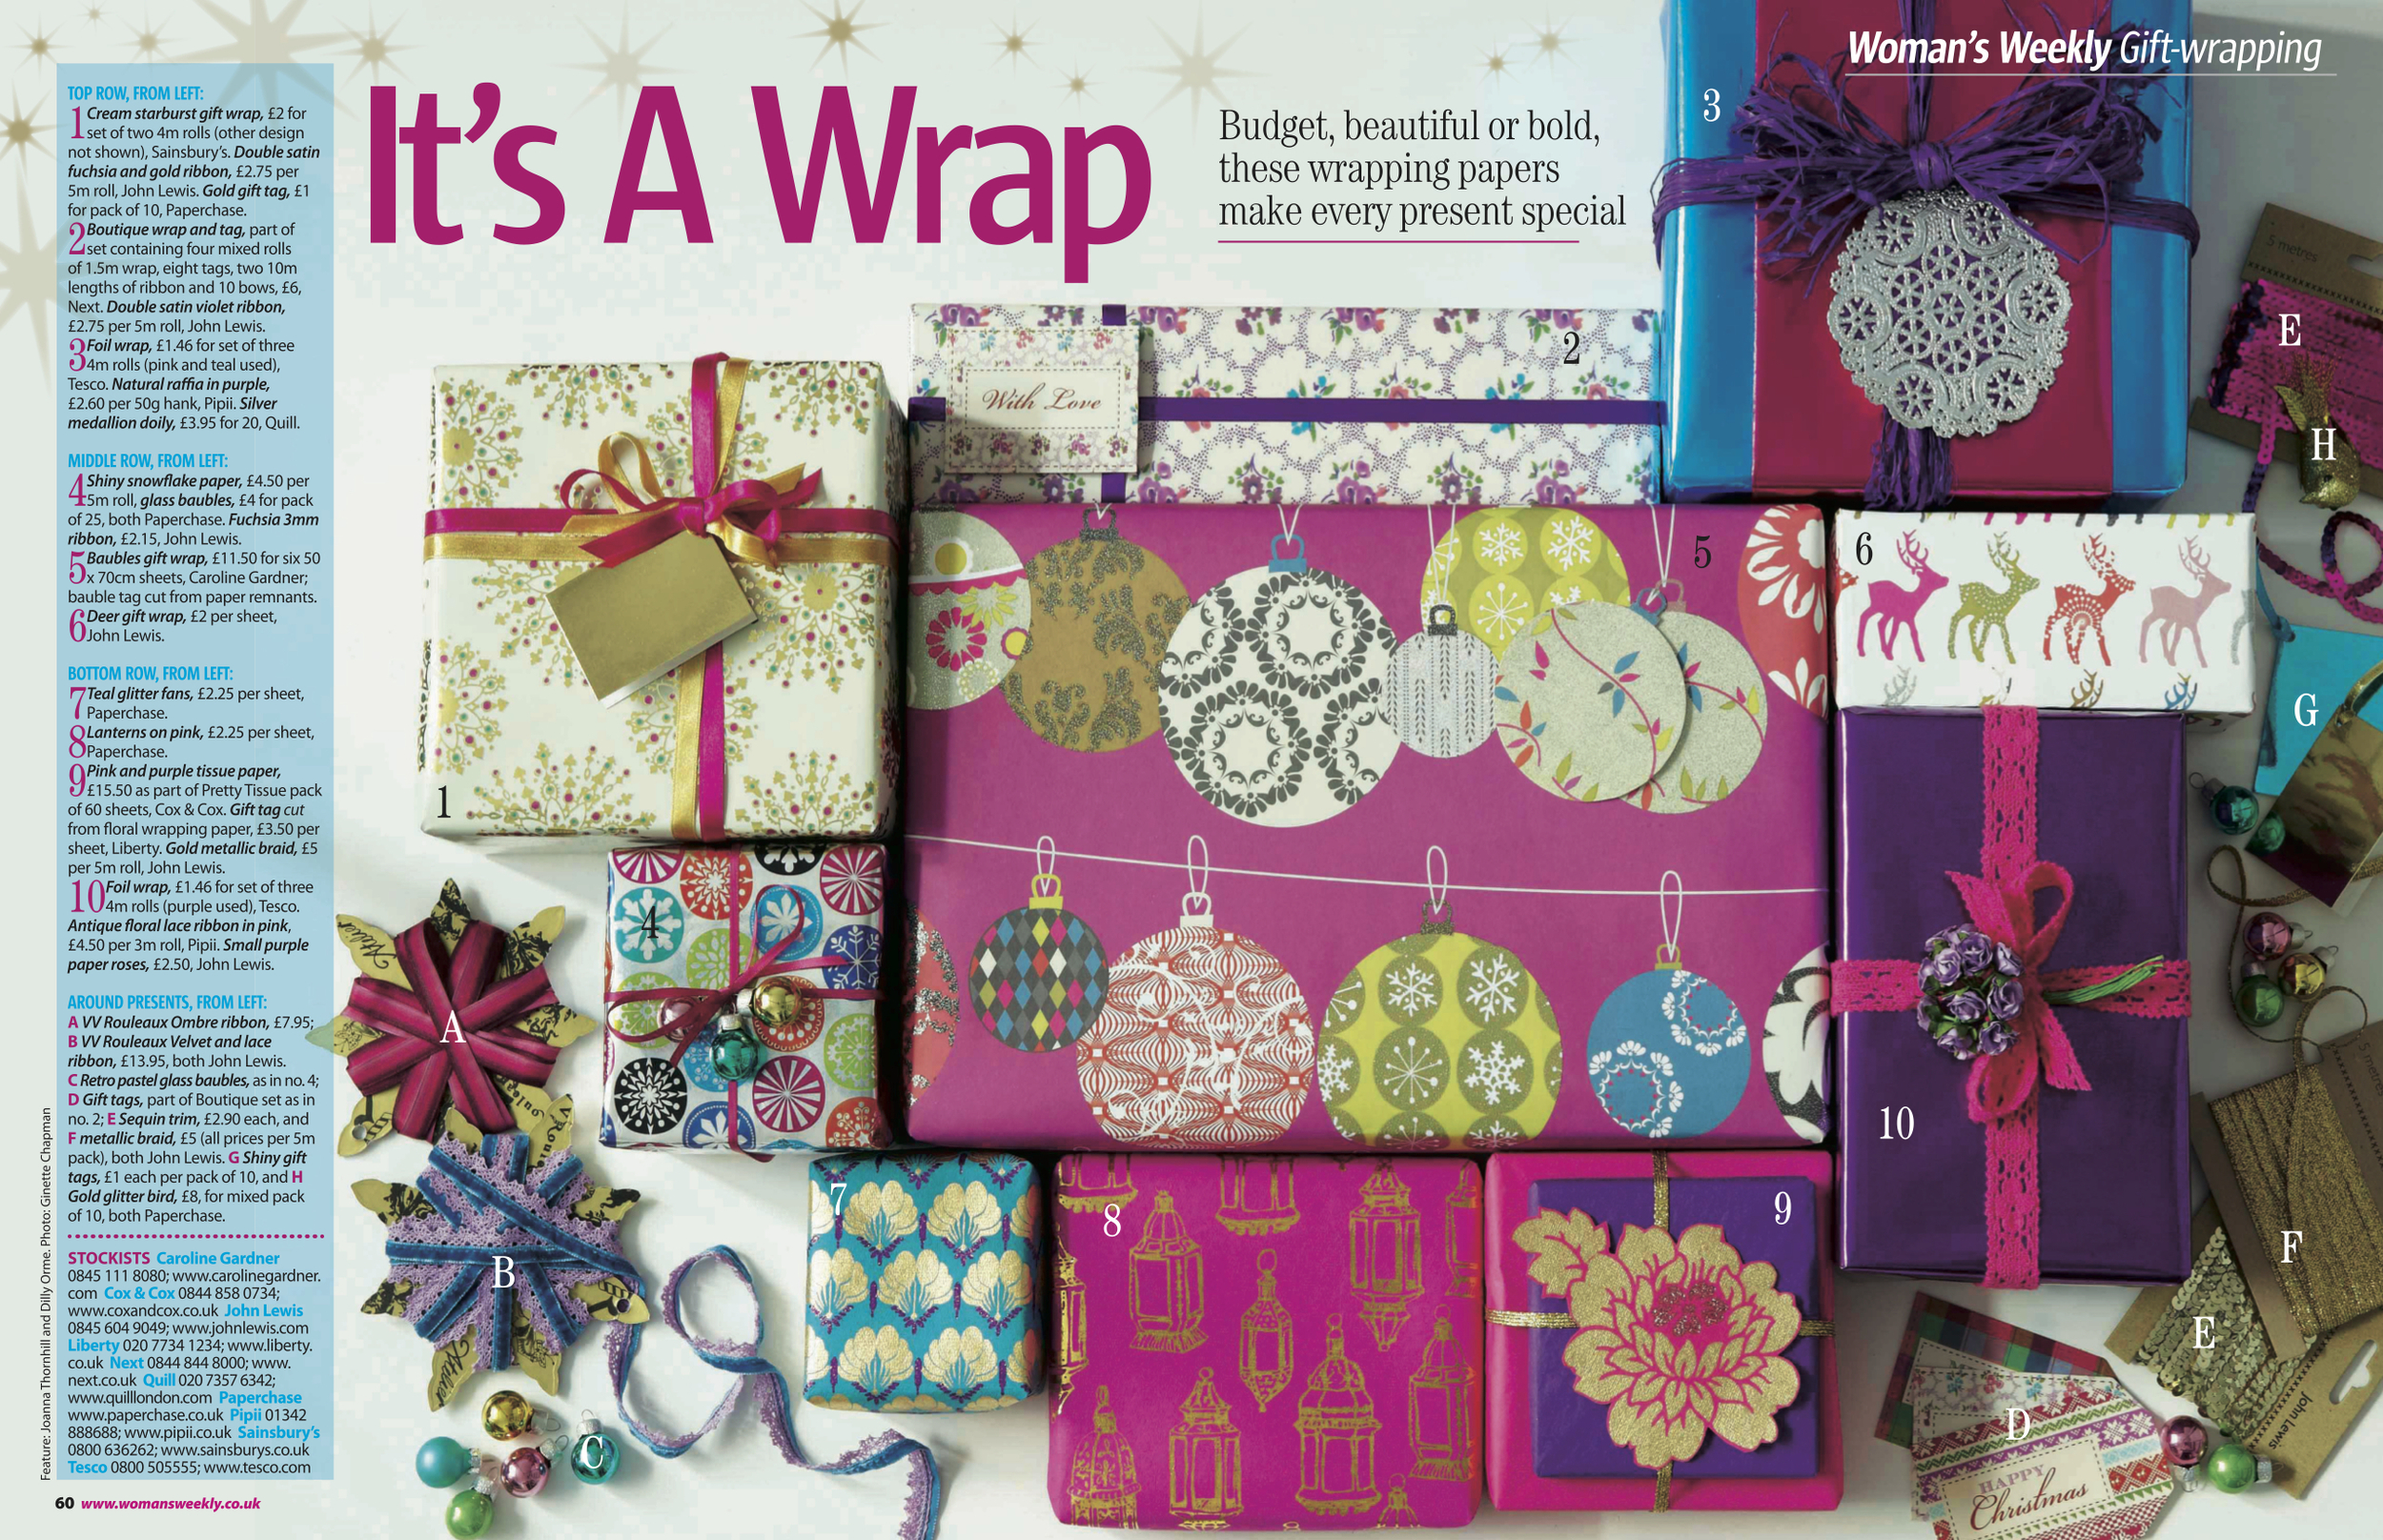 20. Woman's Weekly magazine It's a Wrap feature by Interior Stylist Joanna Thornhill.jpeg